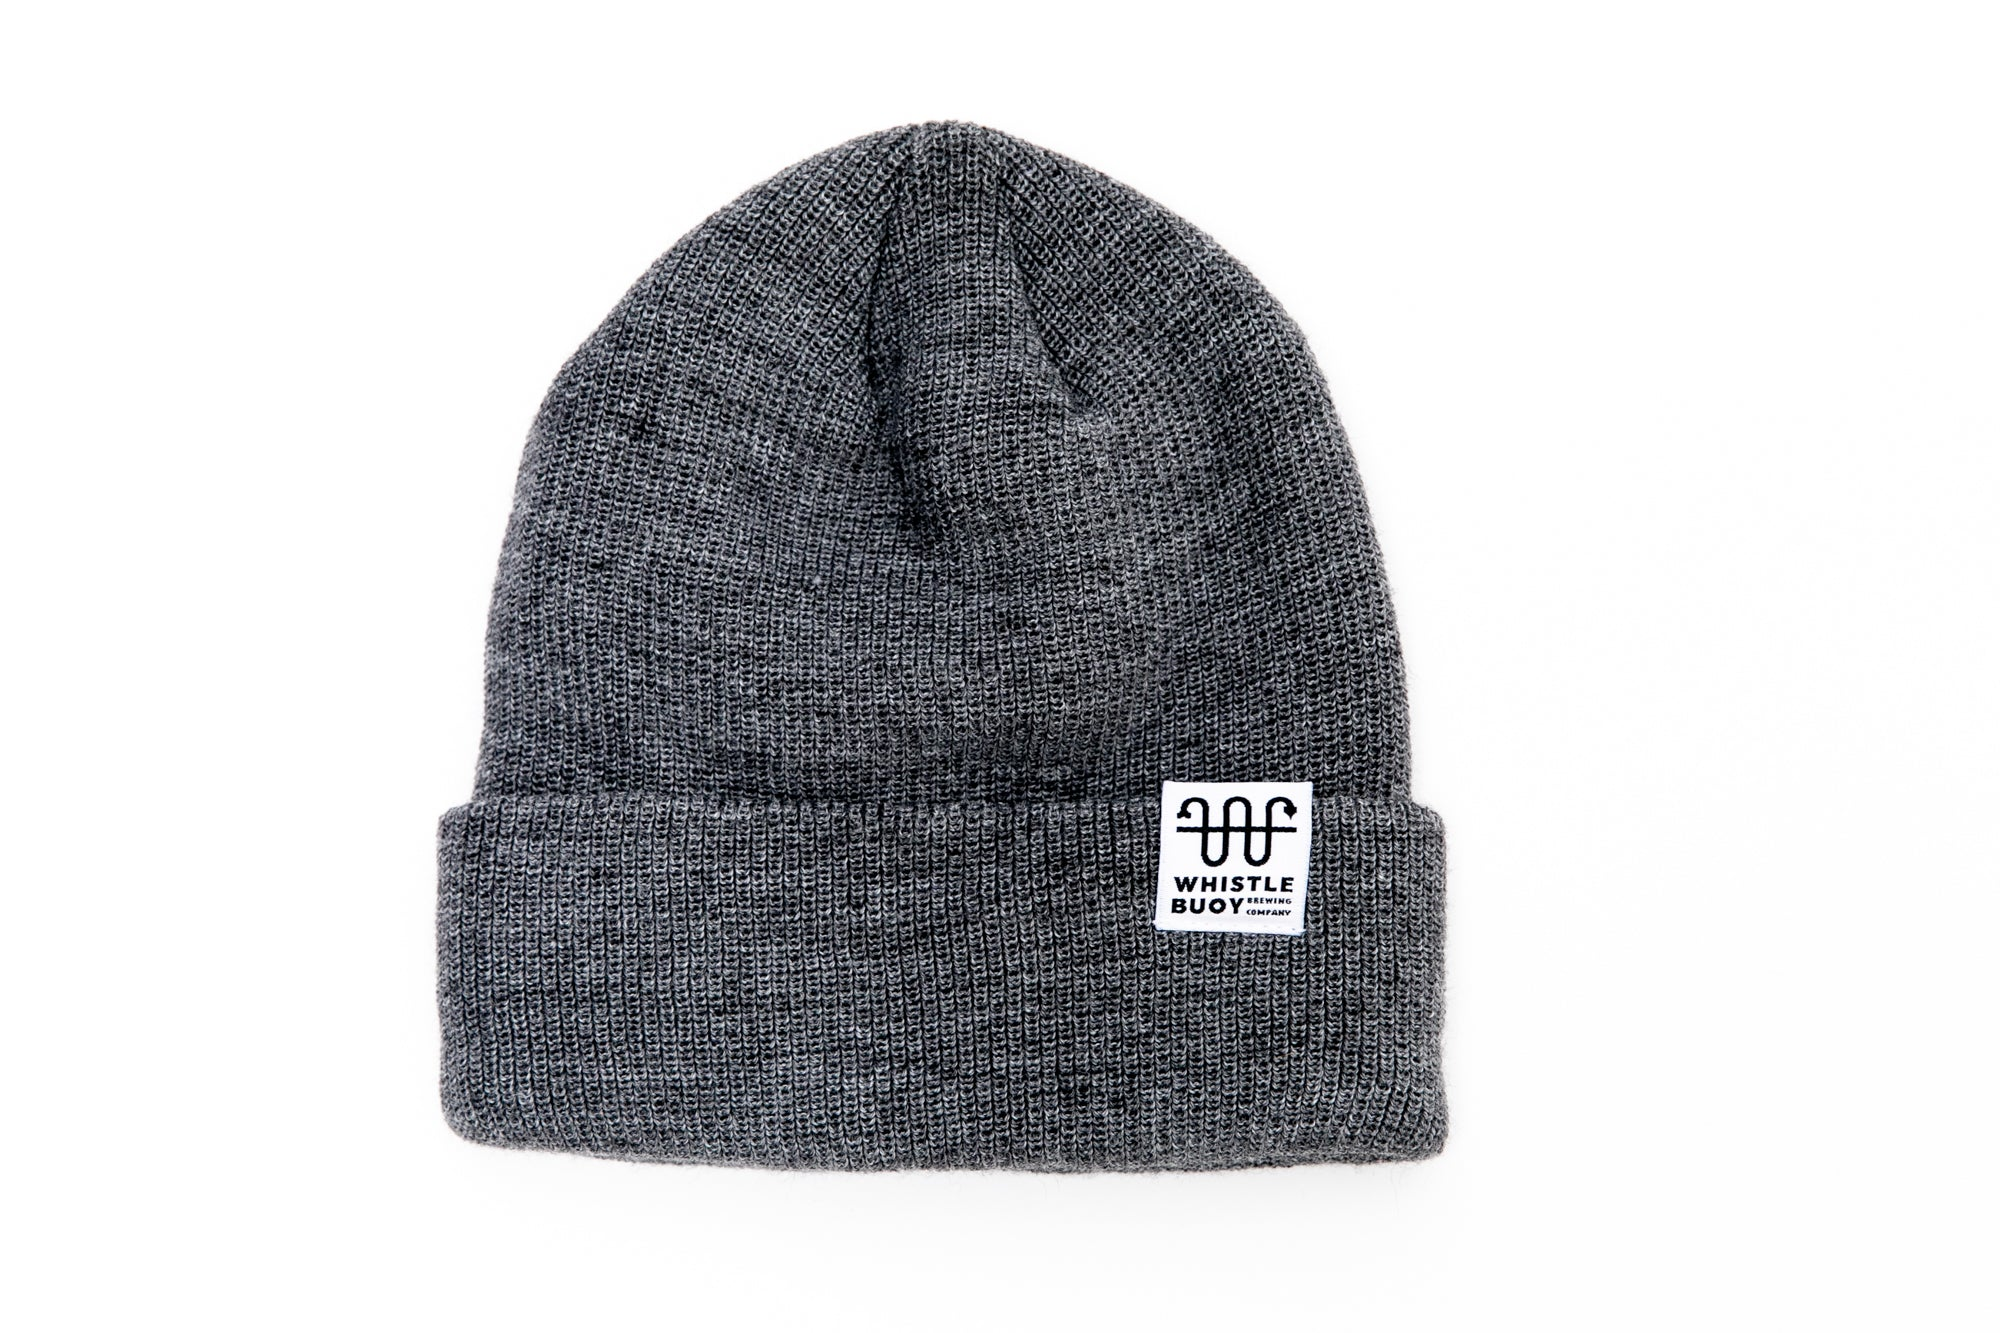 Whistle Buoy merino blend toque with white logo in grey